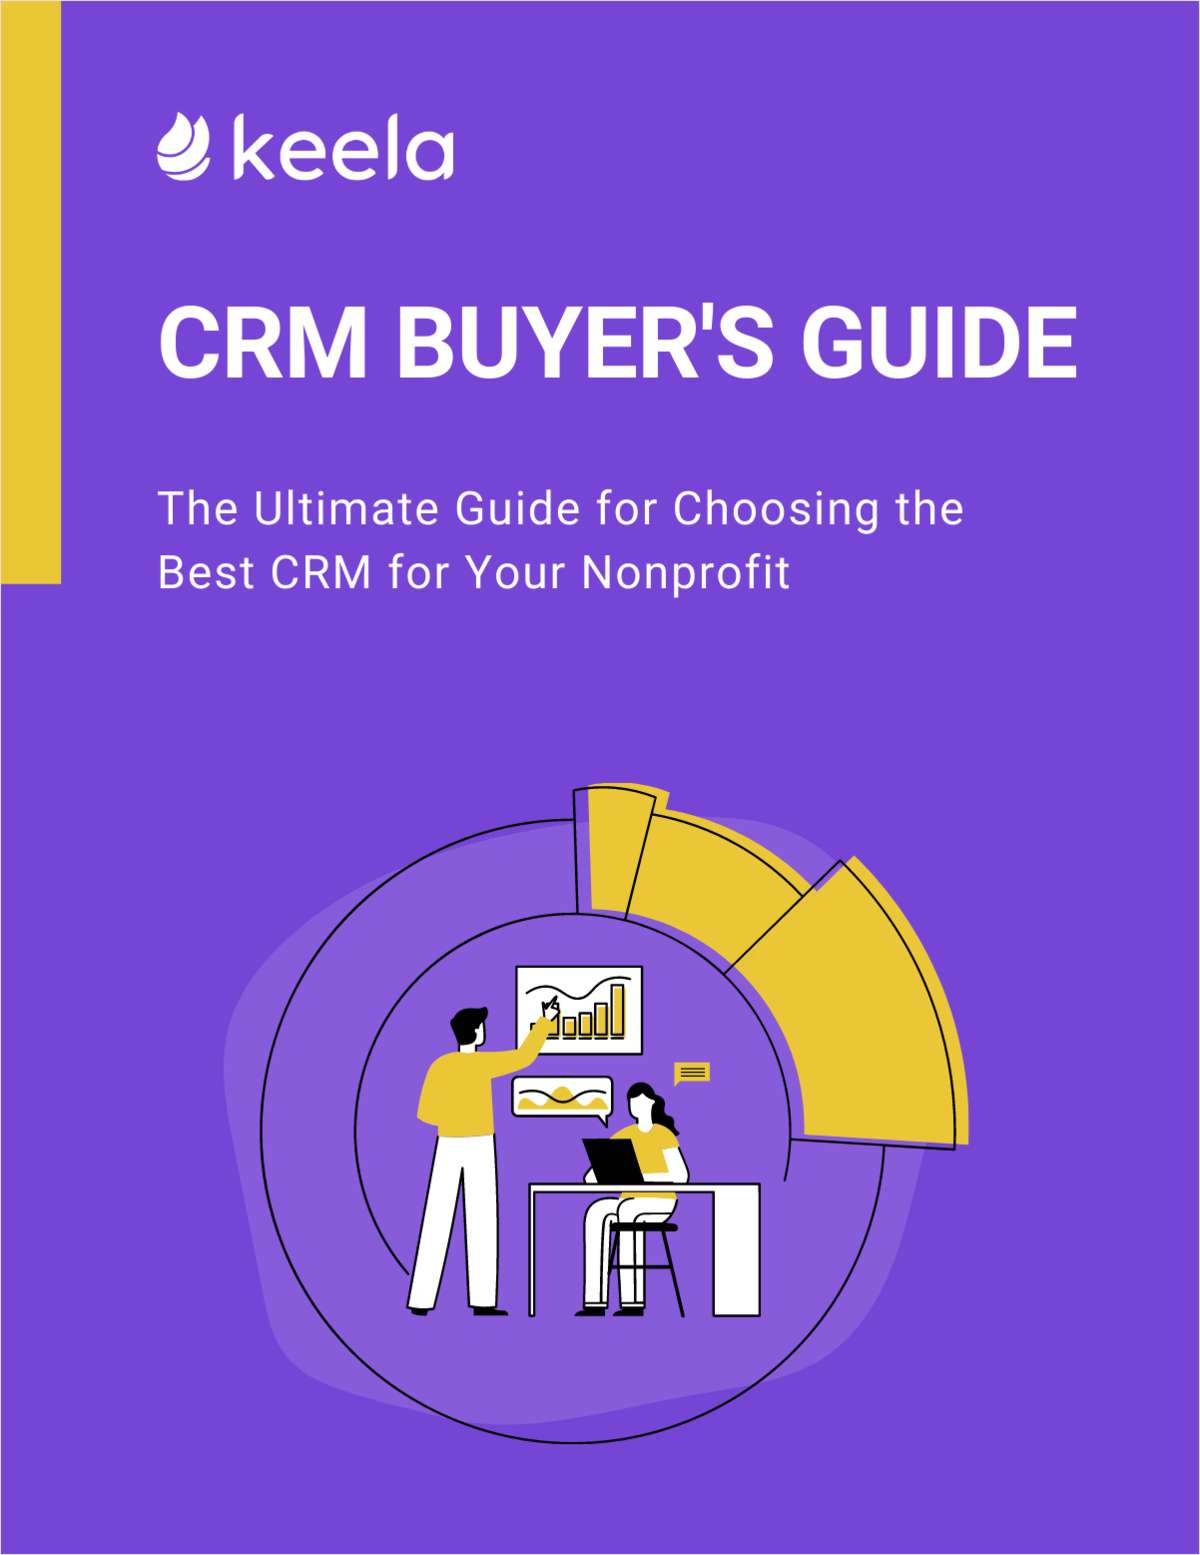 CRM Buyer's Guide for Nonprofits